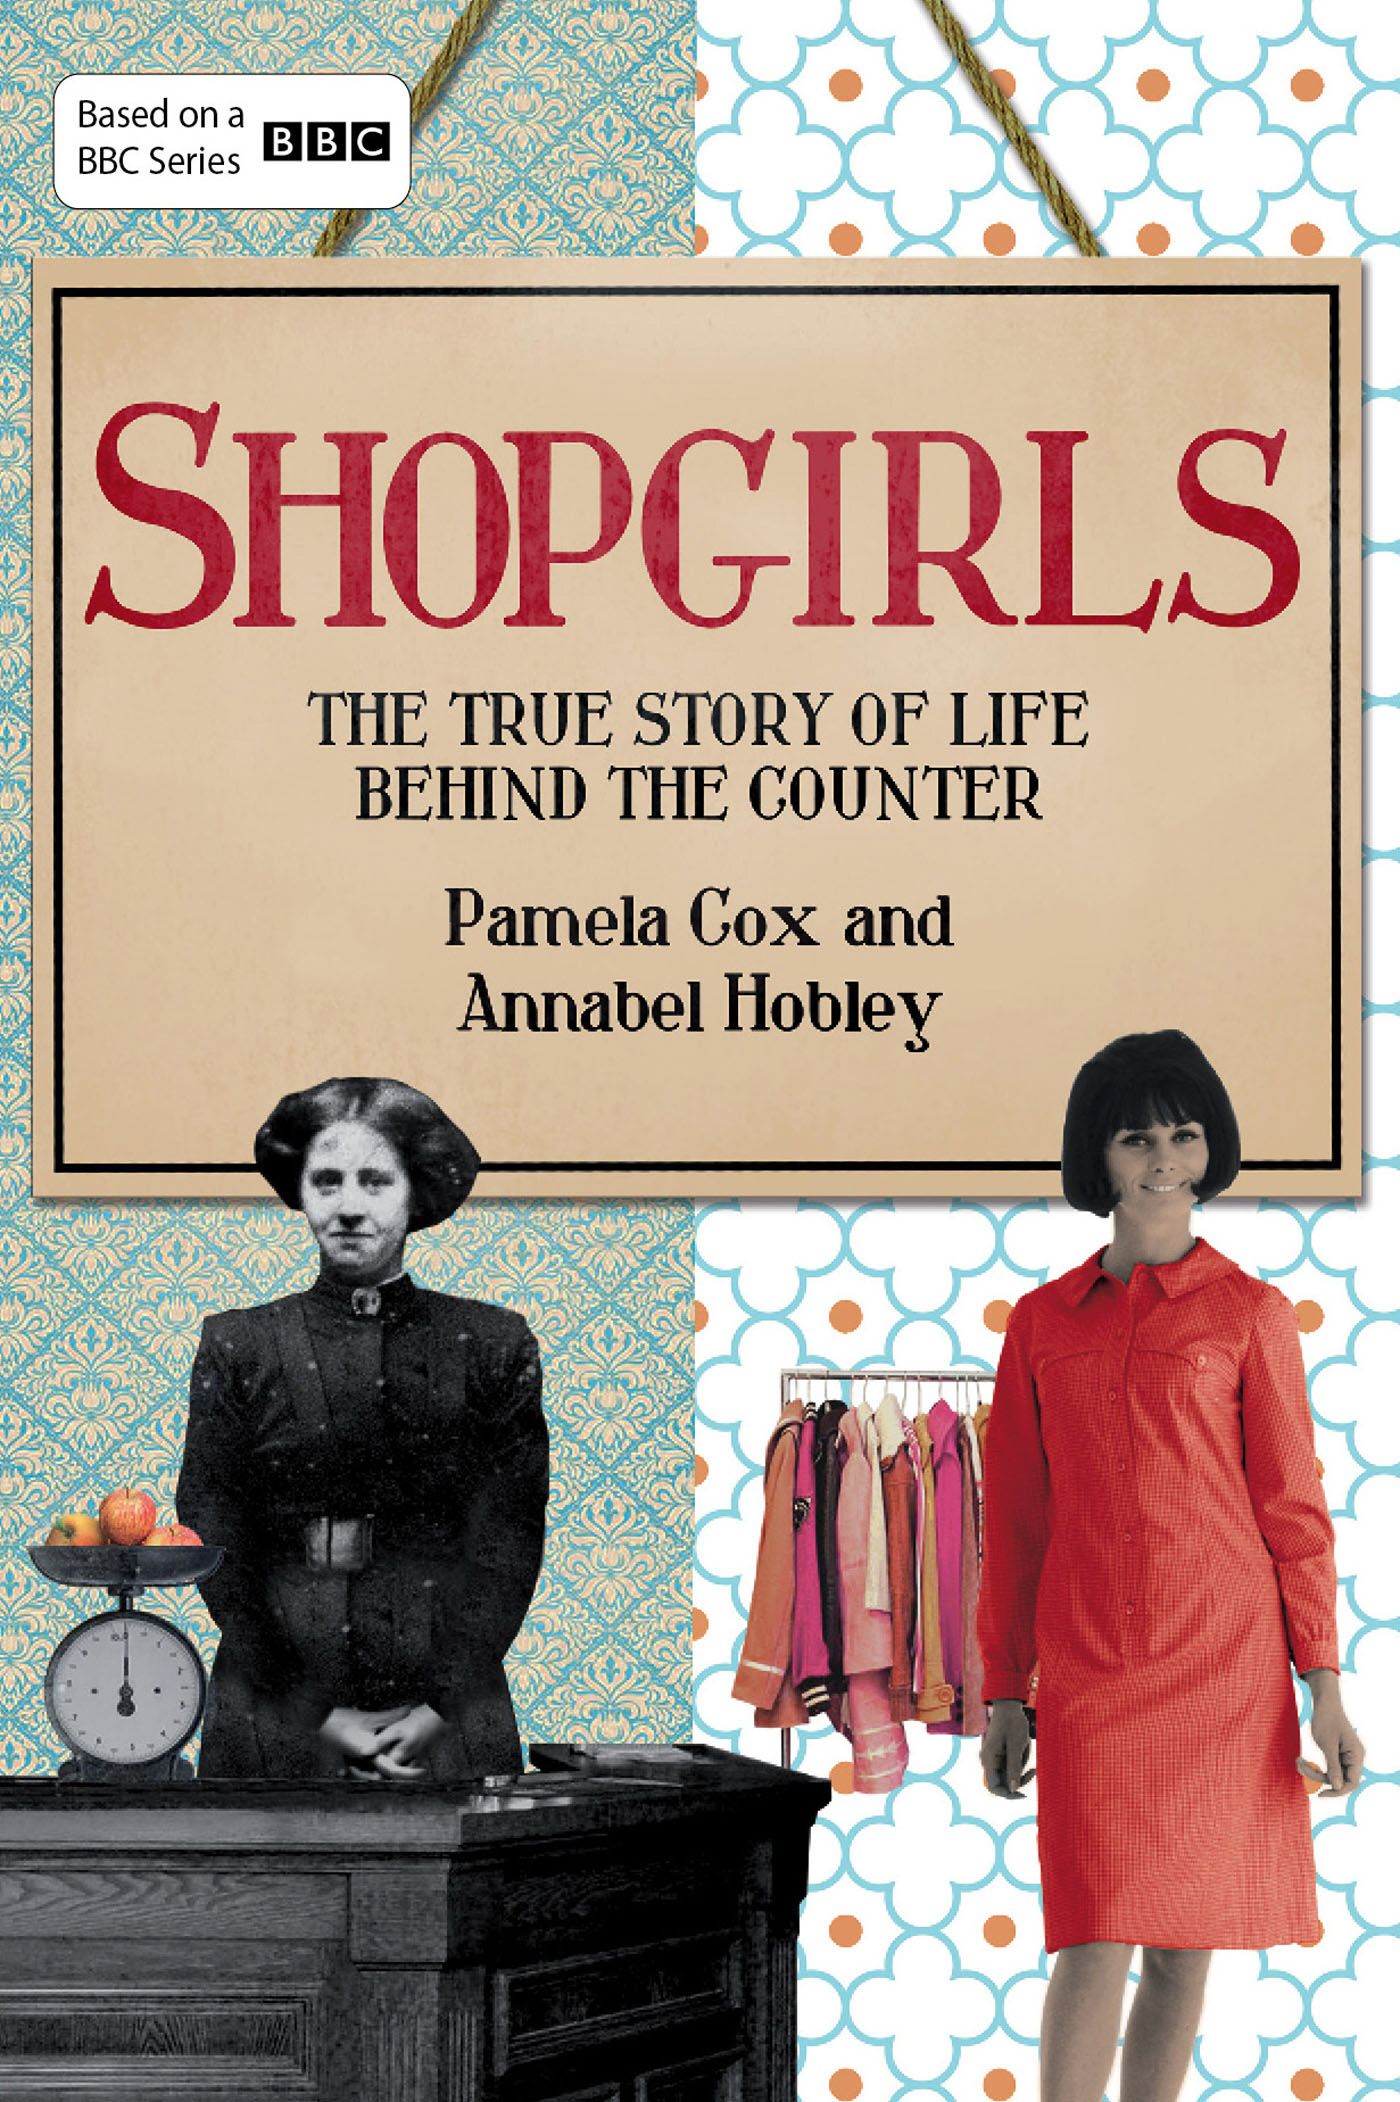 Shopgirls The True Story of Life Behind the Counter